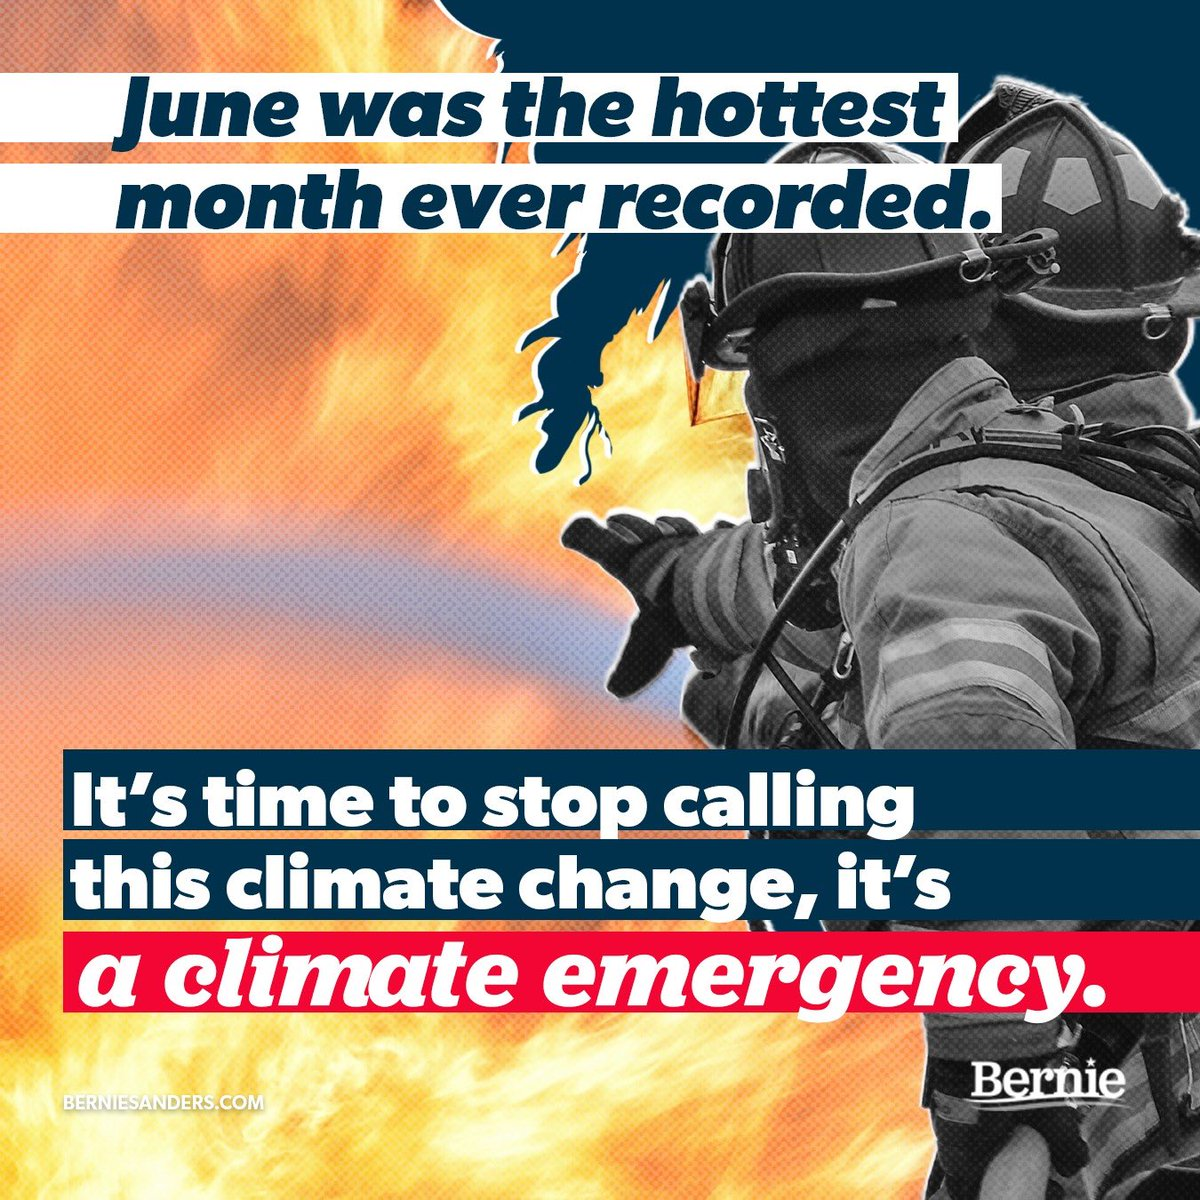 Two-thirds of the country is experiencing a severe heat wave  June was the hottest month on record —EVER  The Arctic is melting at alarming rates  Let's call it what it is — a Climate Emergency We must act now and pass a Green New Deal   #HEATWAVE2019<br>http://pic.twitter.com/6NInkspx0B